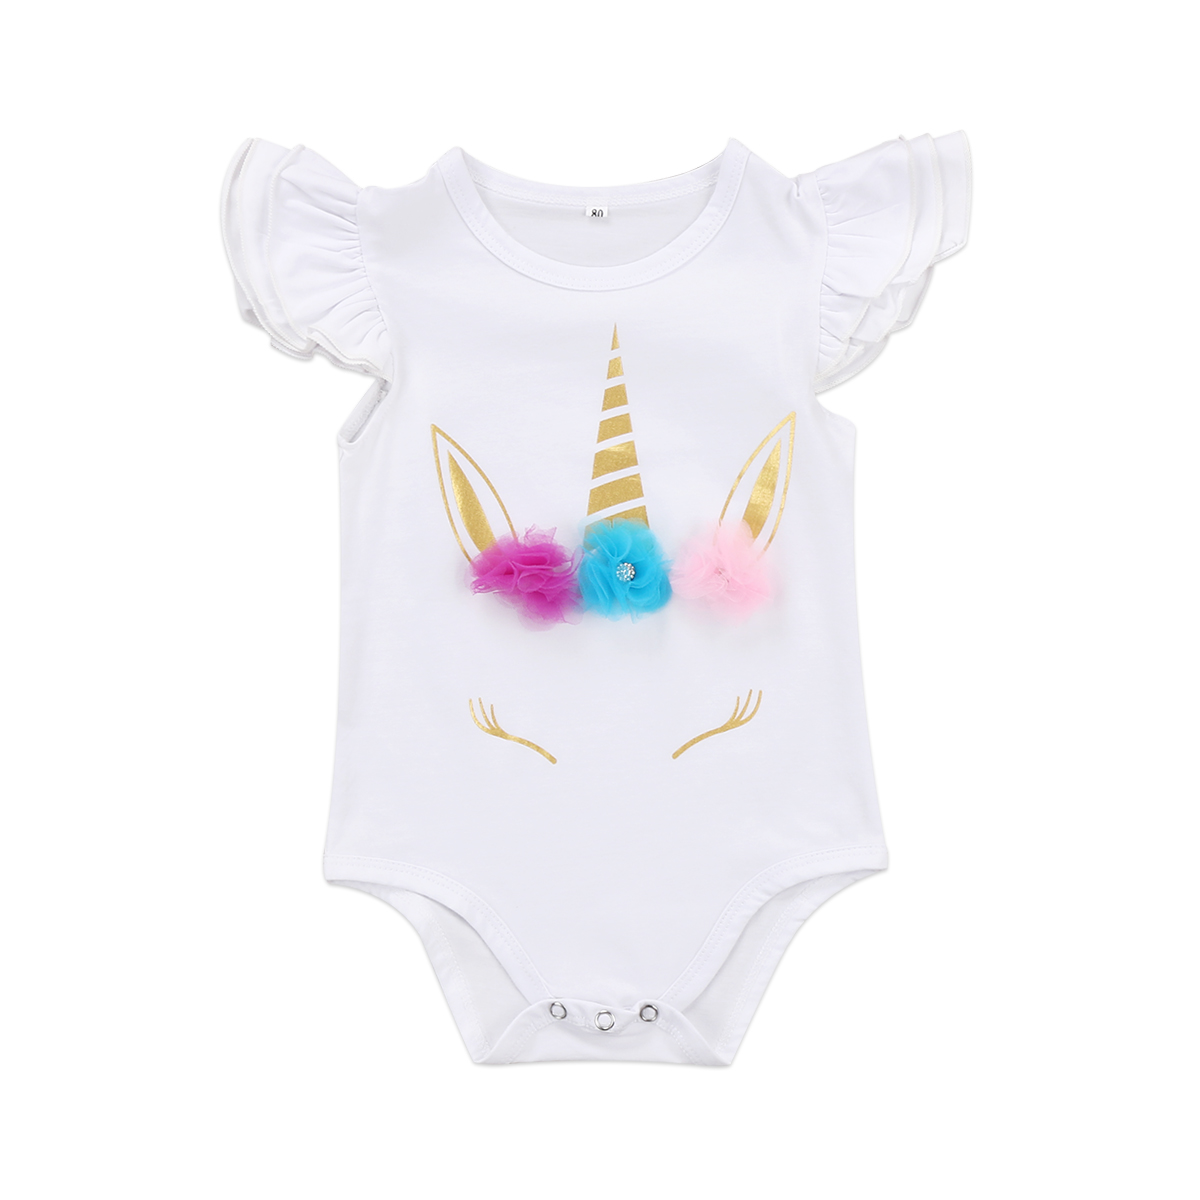 Fashion 2018 Unicorn Newborn Infant Baby Girl Ruffles   Romper   Jumpsuit Outfit Sunsuit Clothes